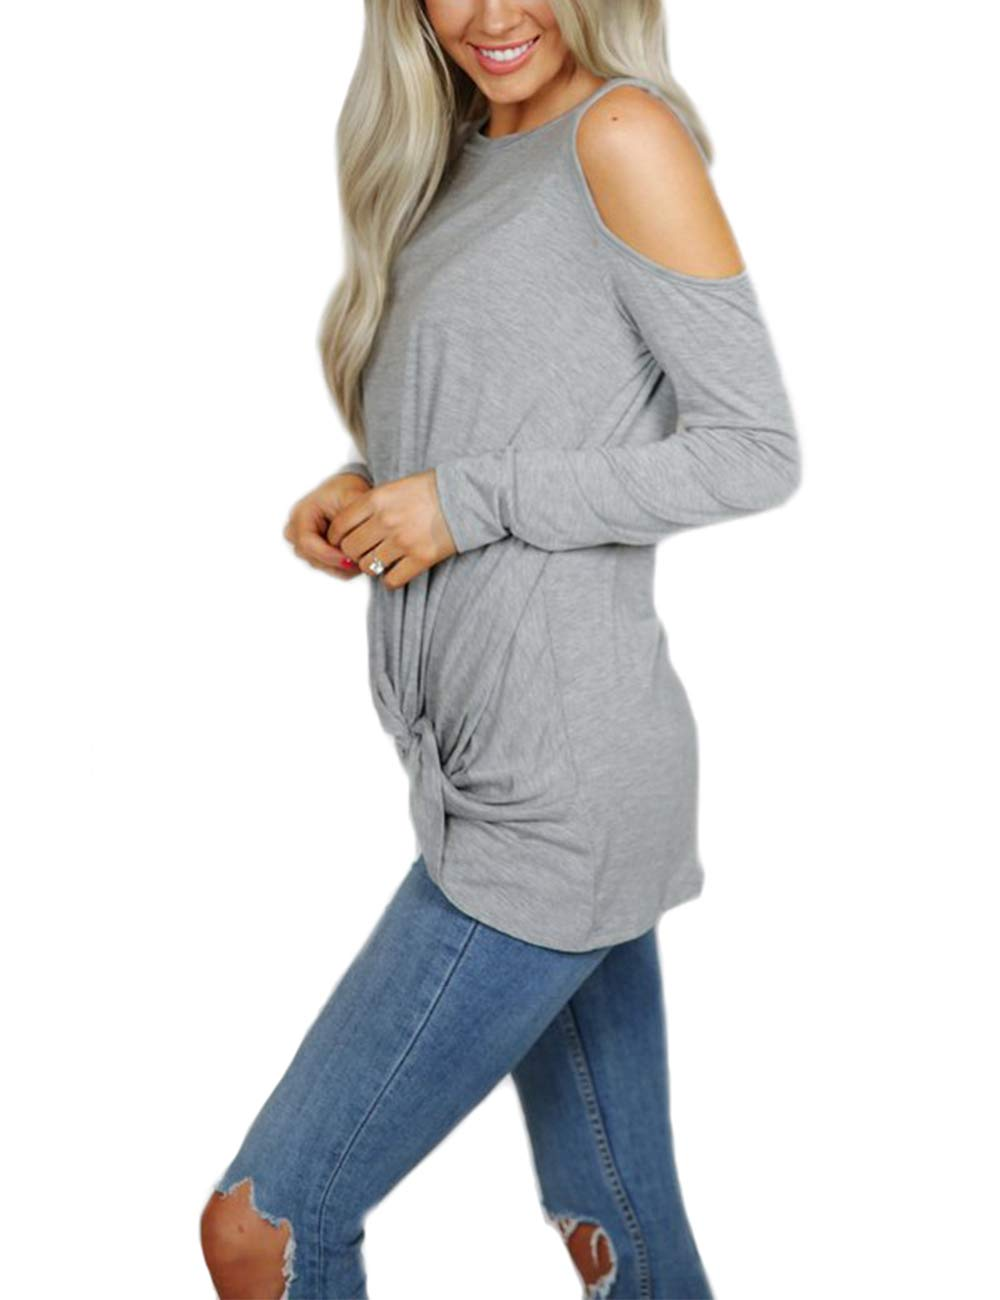 Eanklosco Women's Long Sleeve Cold Shoulder Cut Out T Shirts Casual Knot Tunic Tops (Grey, L)